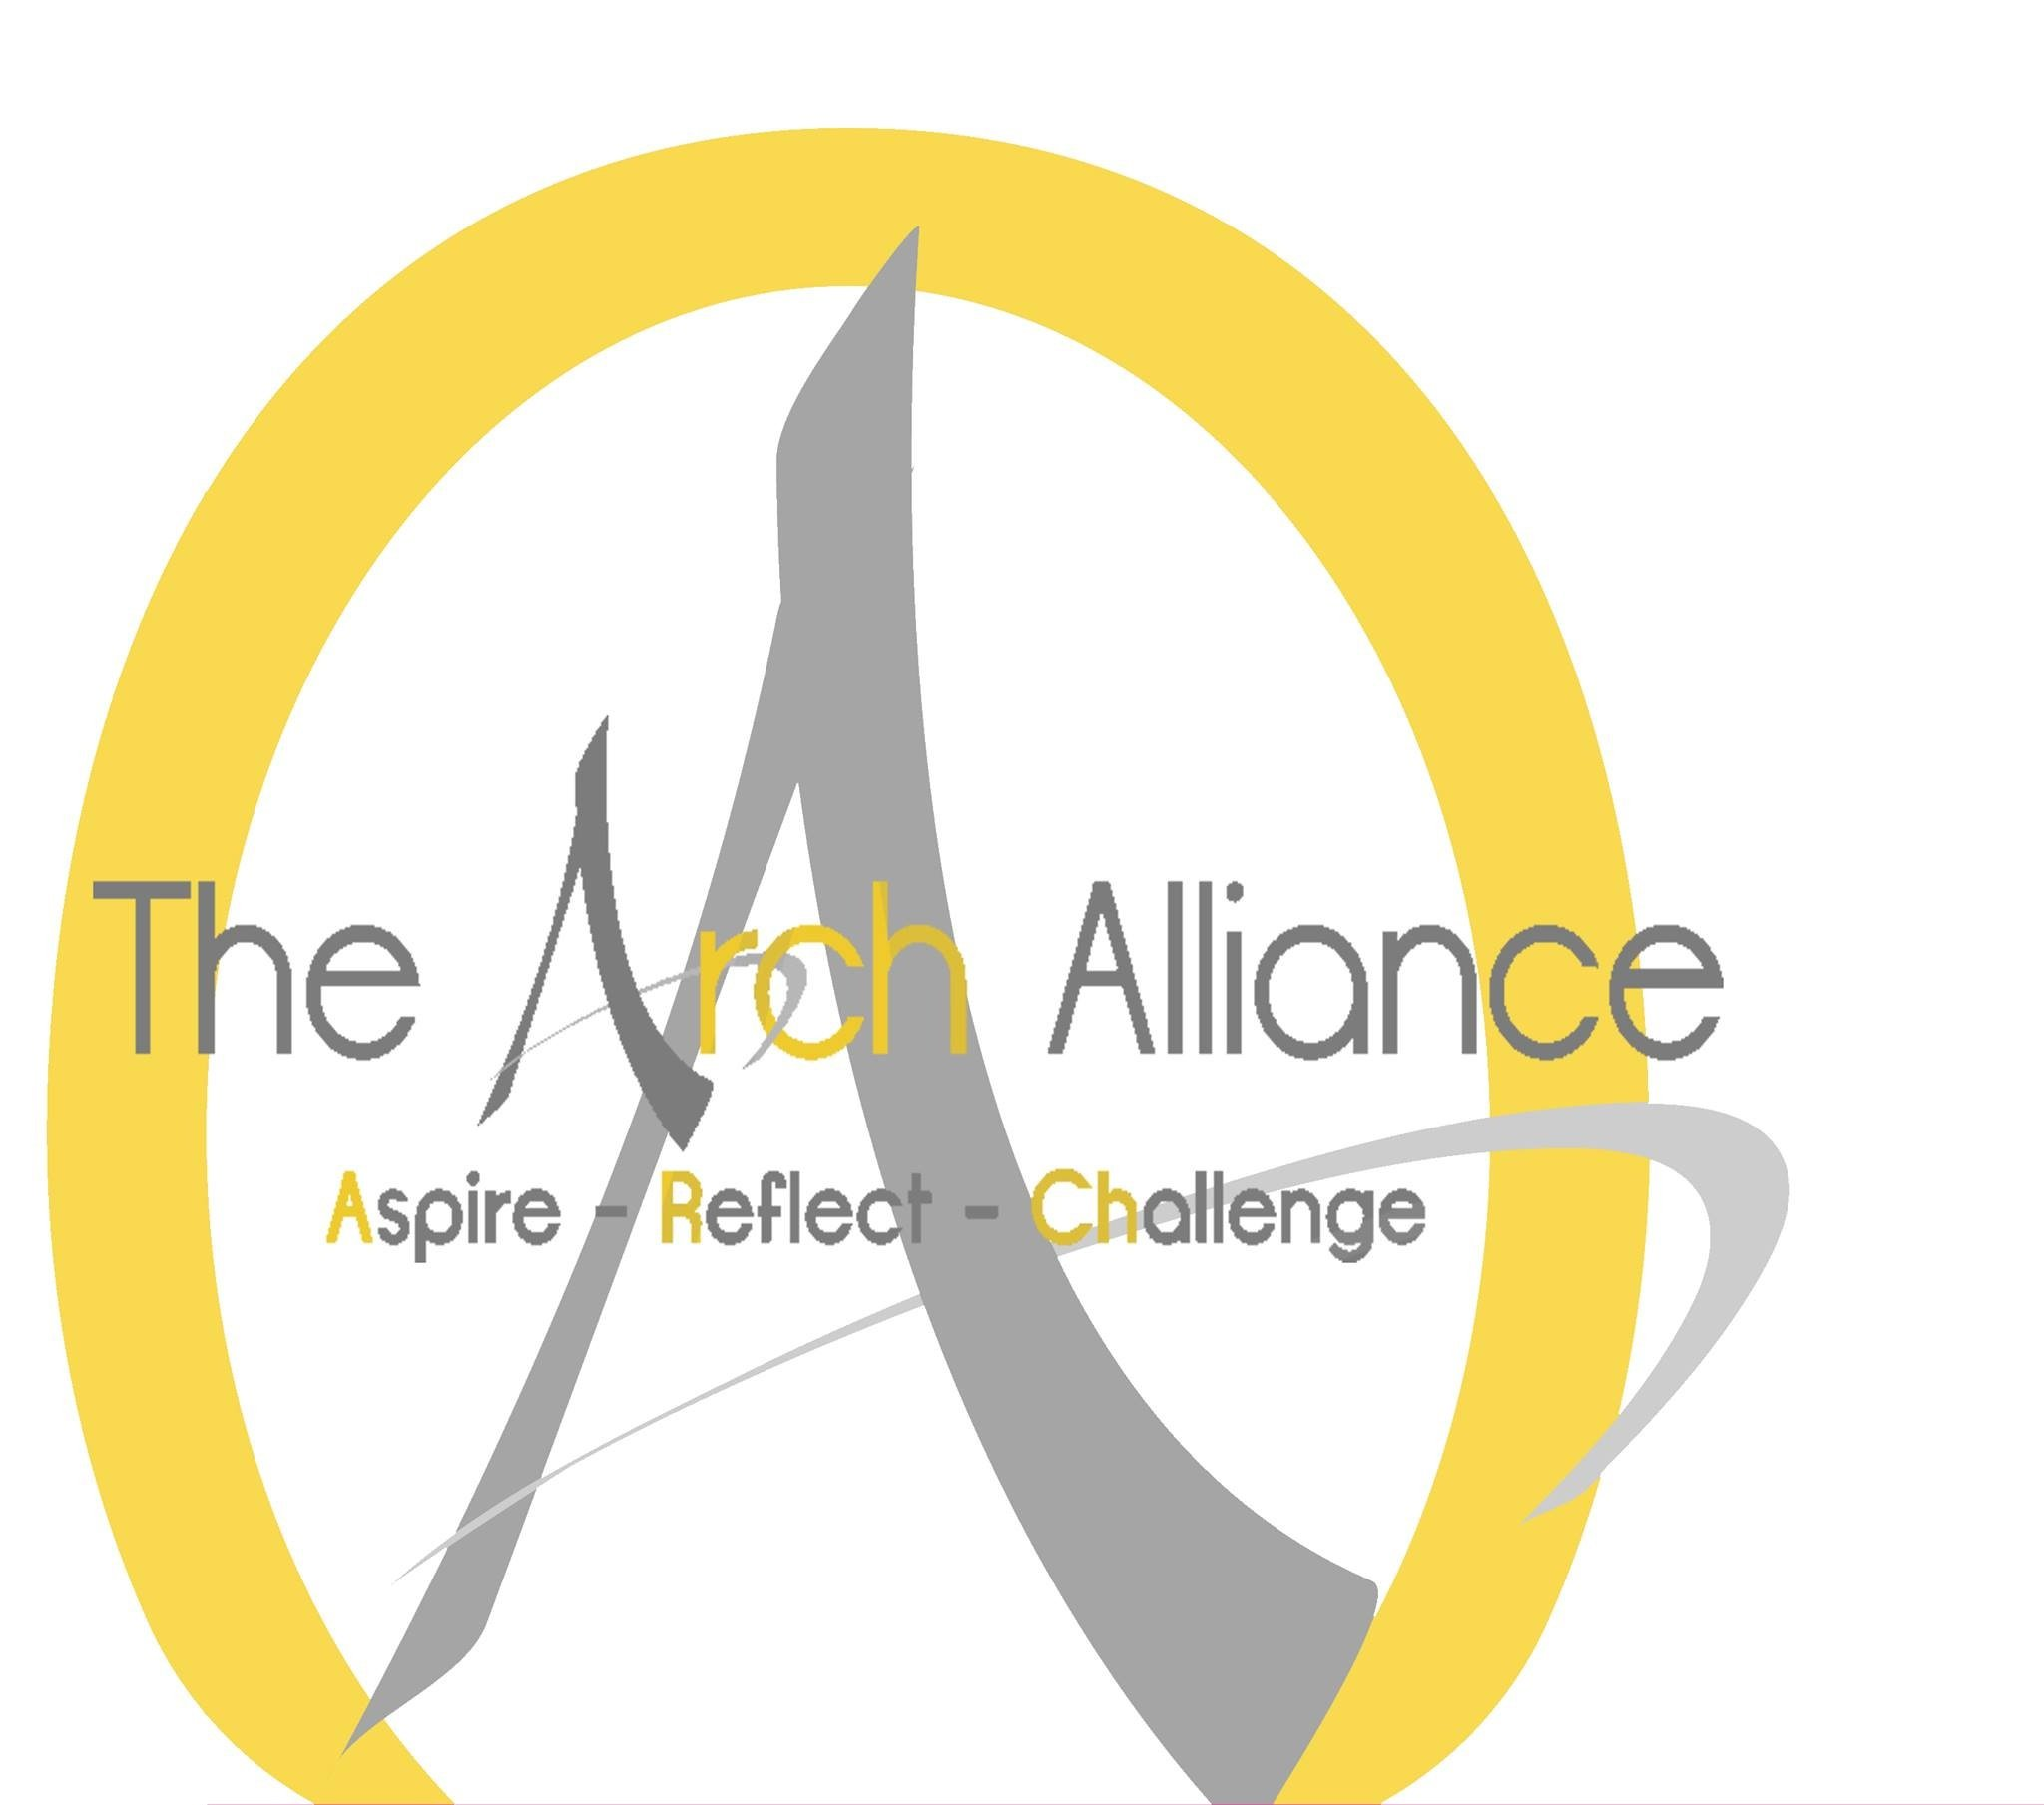 The Arch Alliance